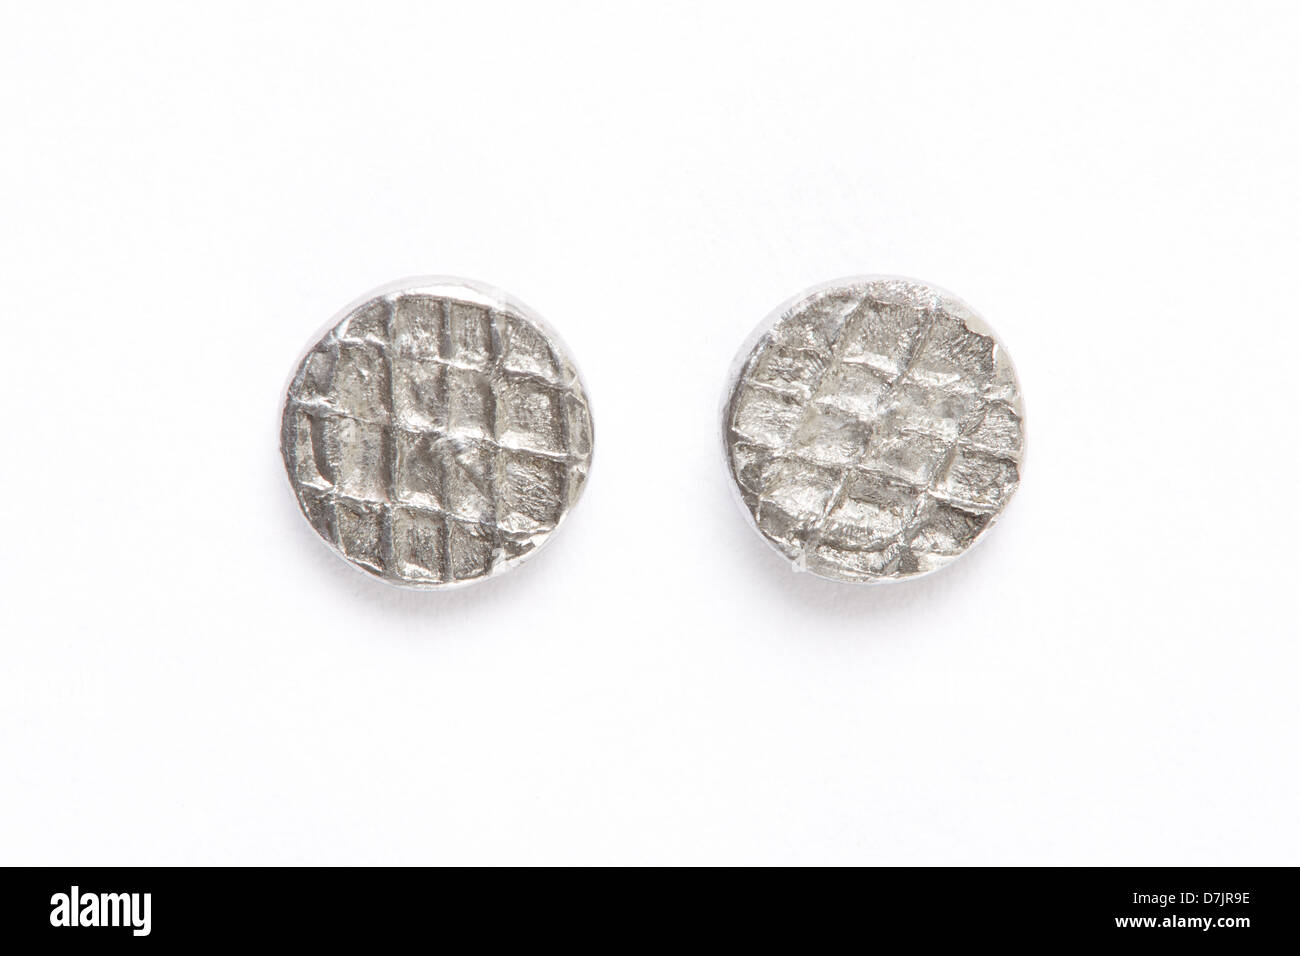 Metal nails heads - Stock Image